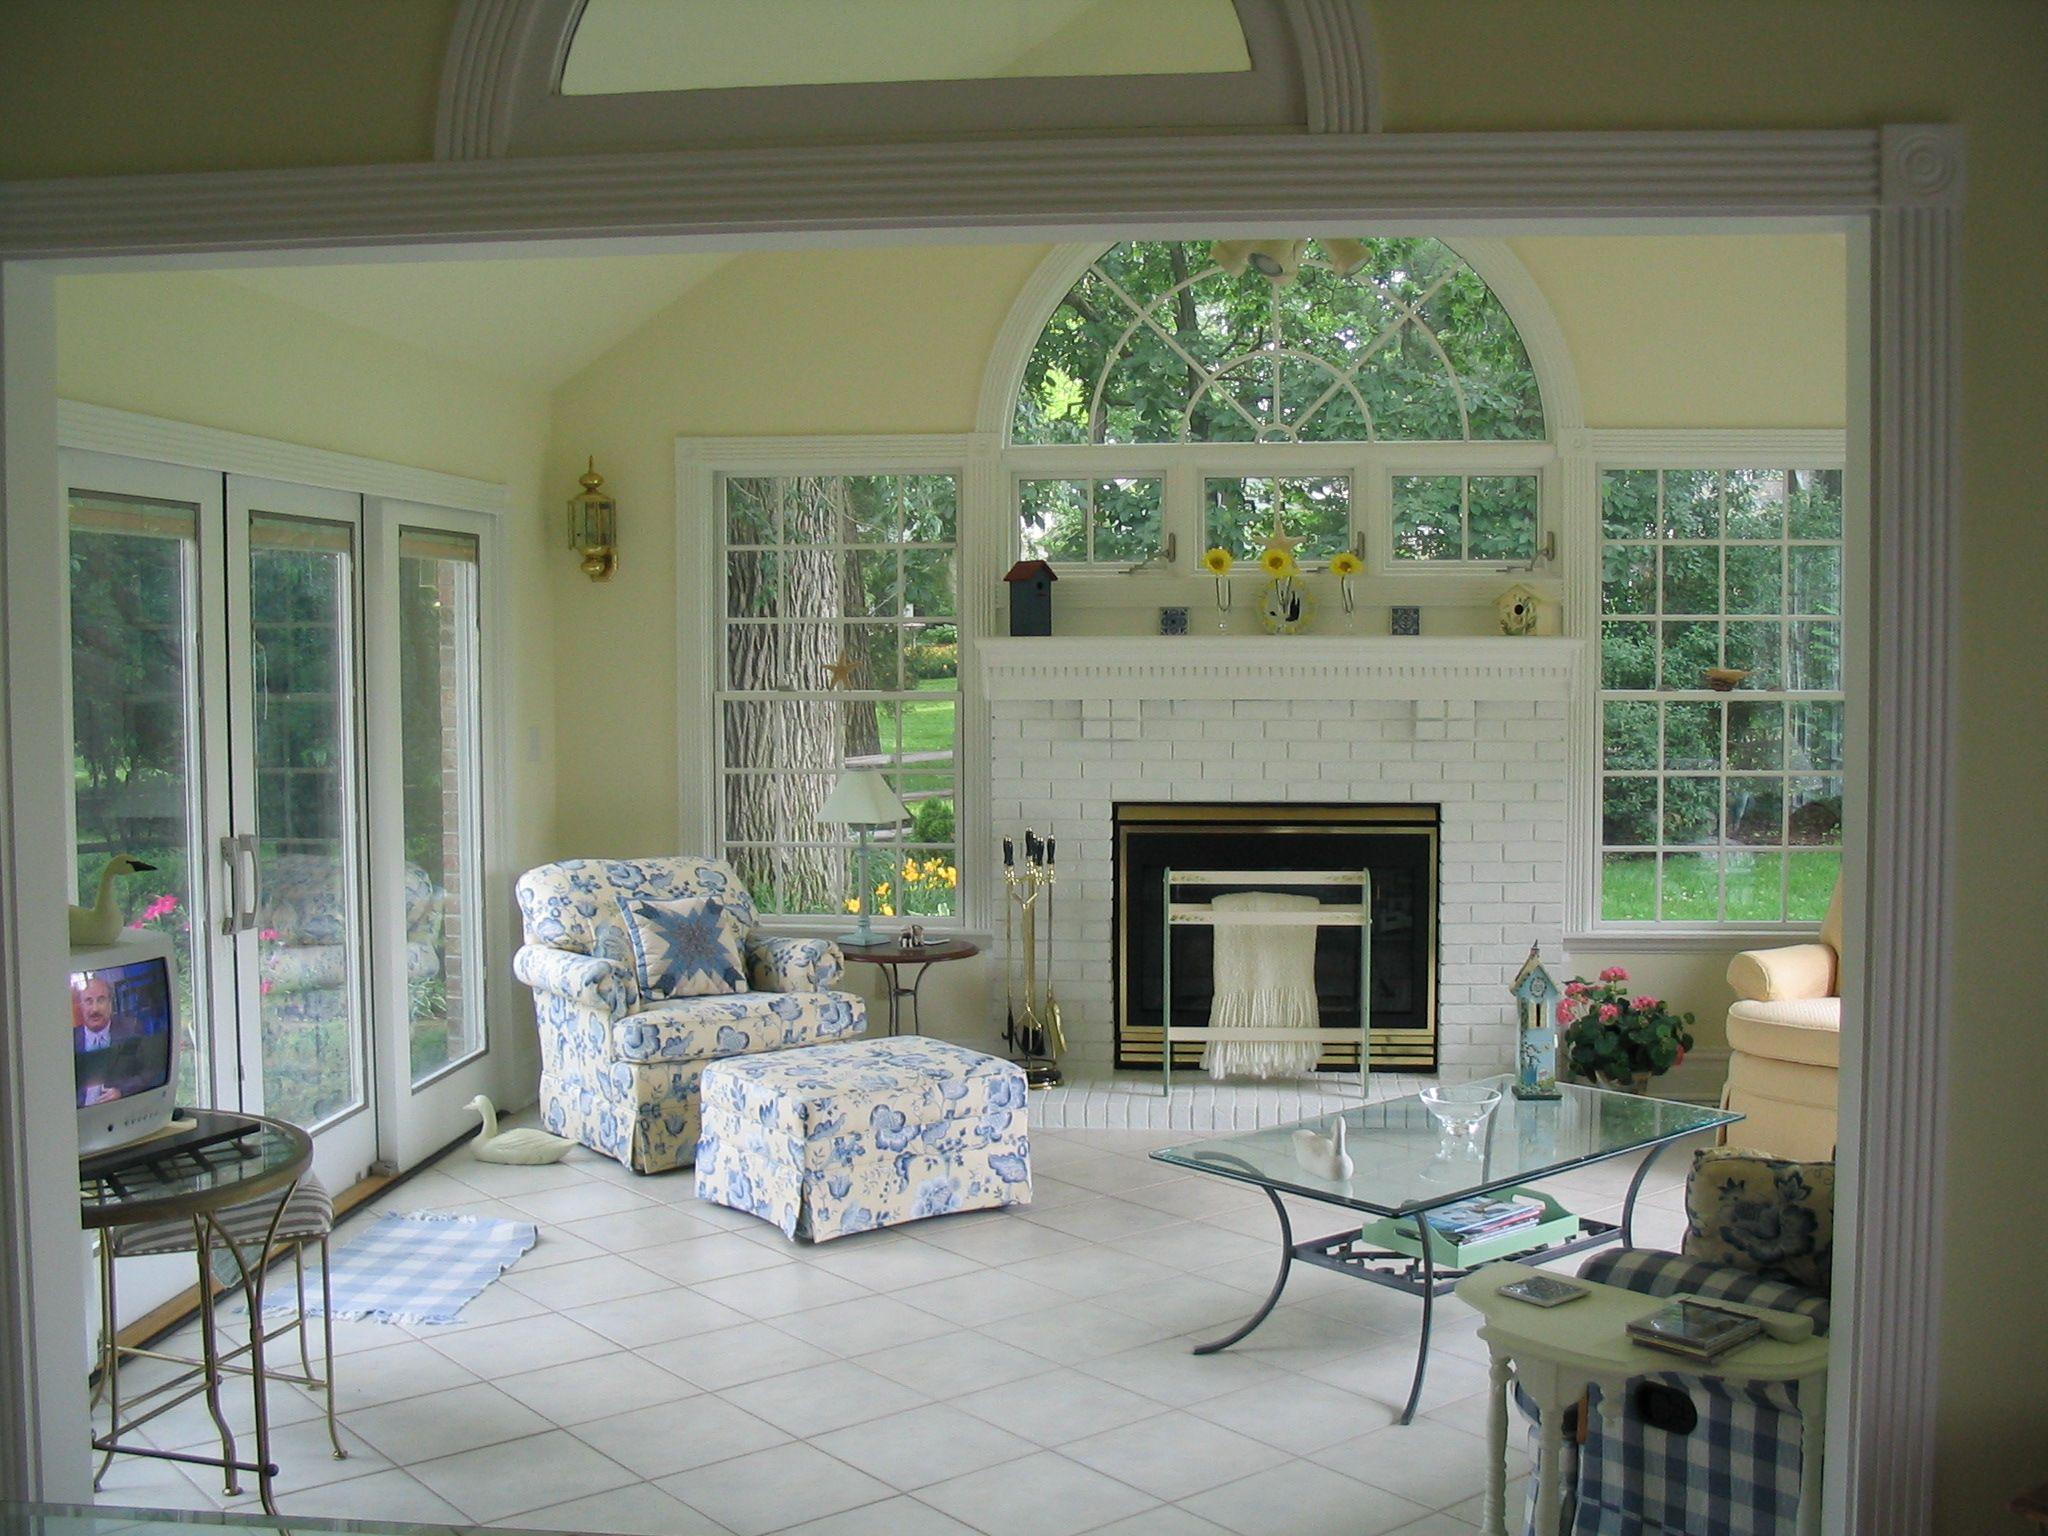 sunroom additions | Sunroom / Dinette Addition - Winfield | family on enclosed patio room designs, home additions sunroom plans designs, sun room additions kit prices, florida sunroom designs, american house plan designs, interior sunroom addition designs, rustic sunroom designs, sun room addition plans and designs,